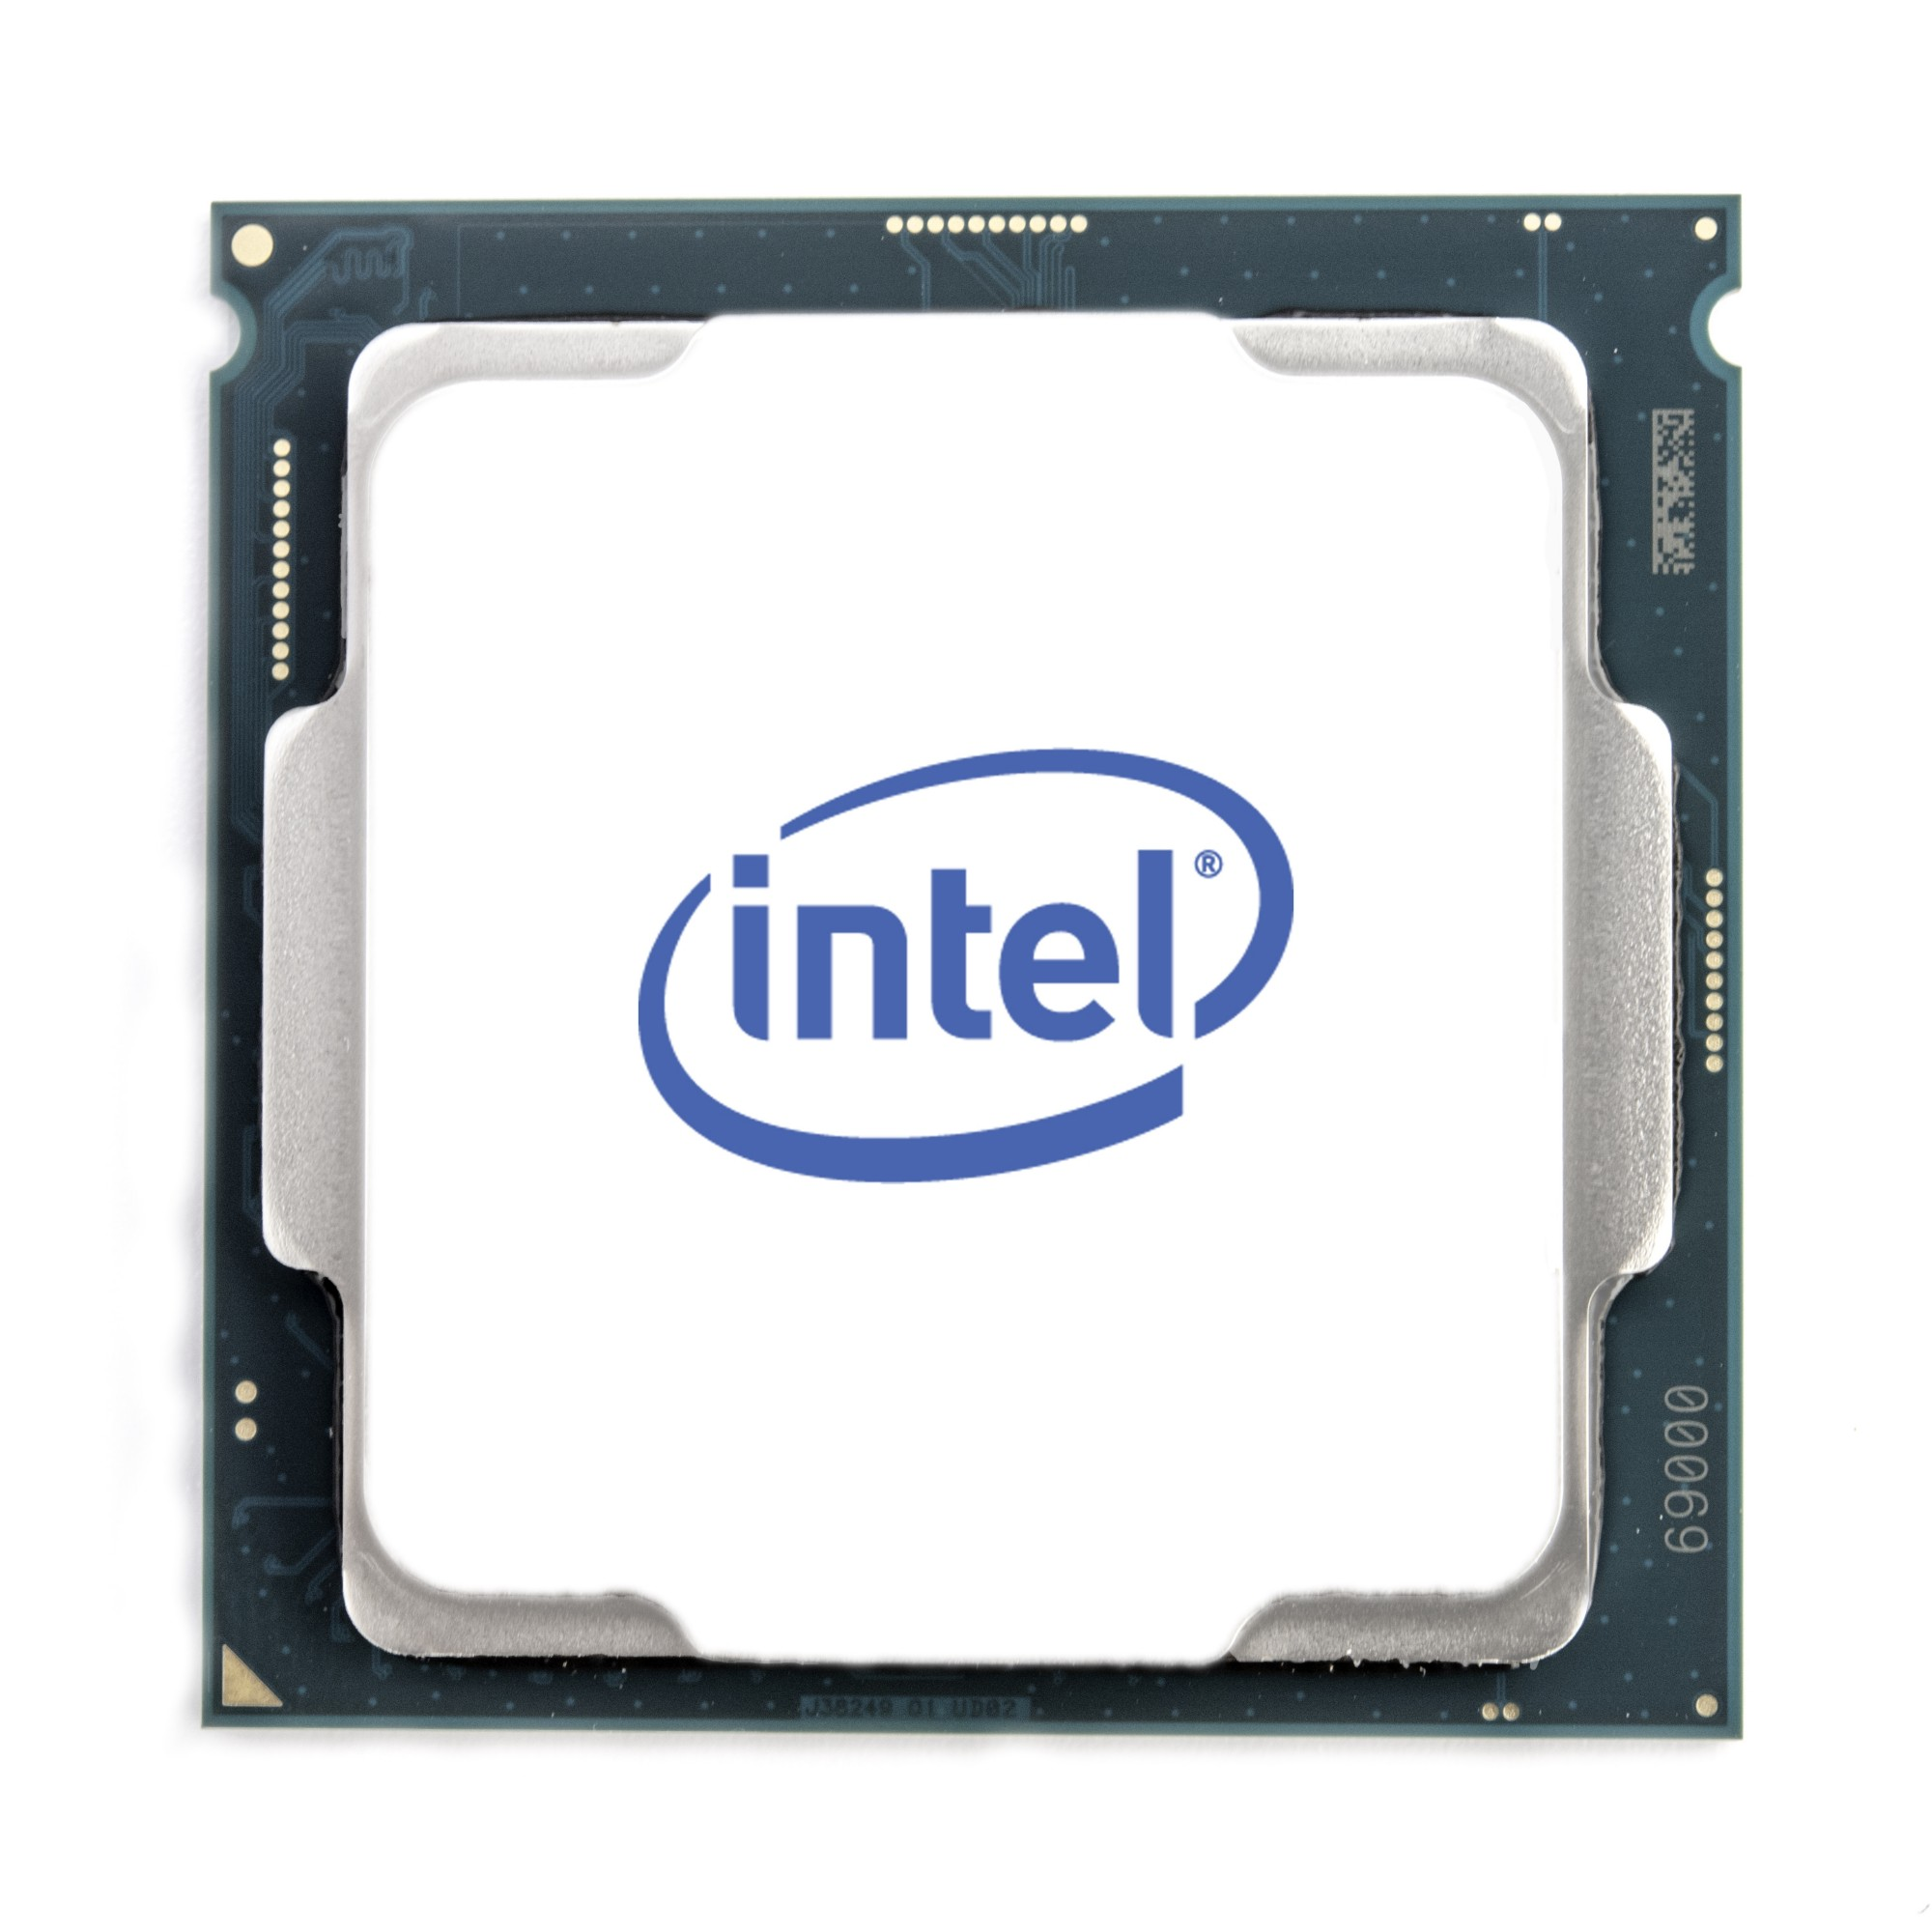 Intel Xeon W-3175X processor 3.1 GHz Box 38.5 MB Smart Cache